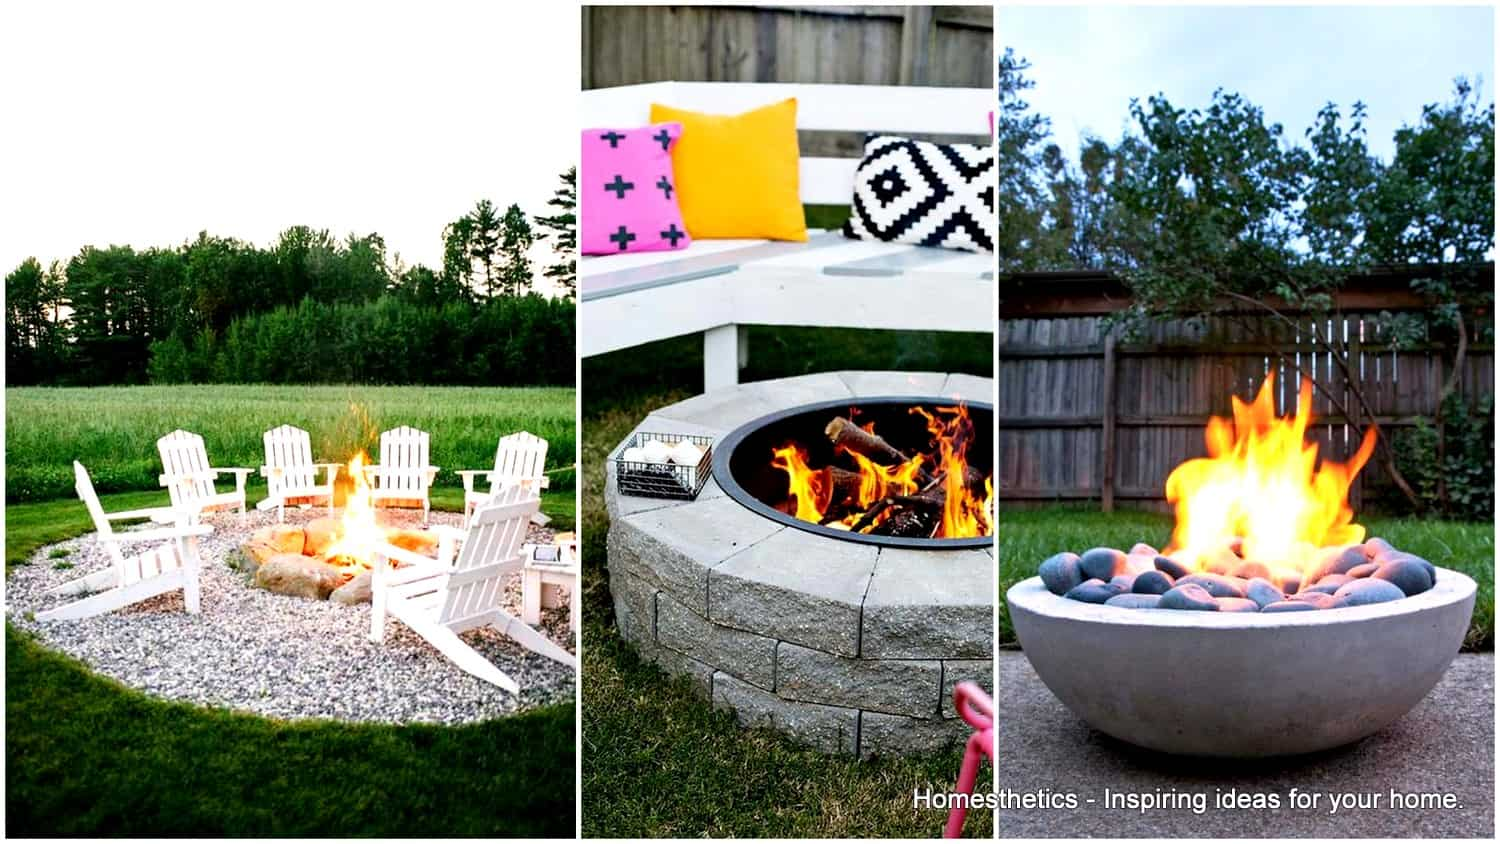 67 Brilliant Diy Fire Pit Plans Ideas To Build For Coziness And Warmth